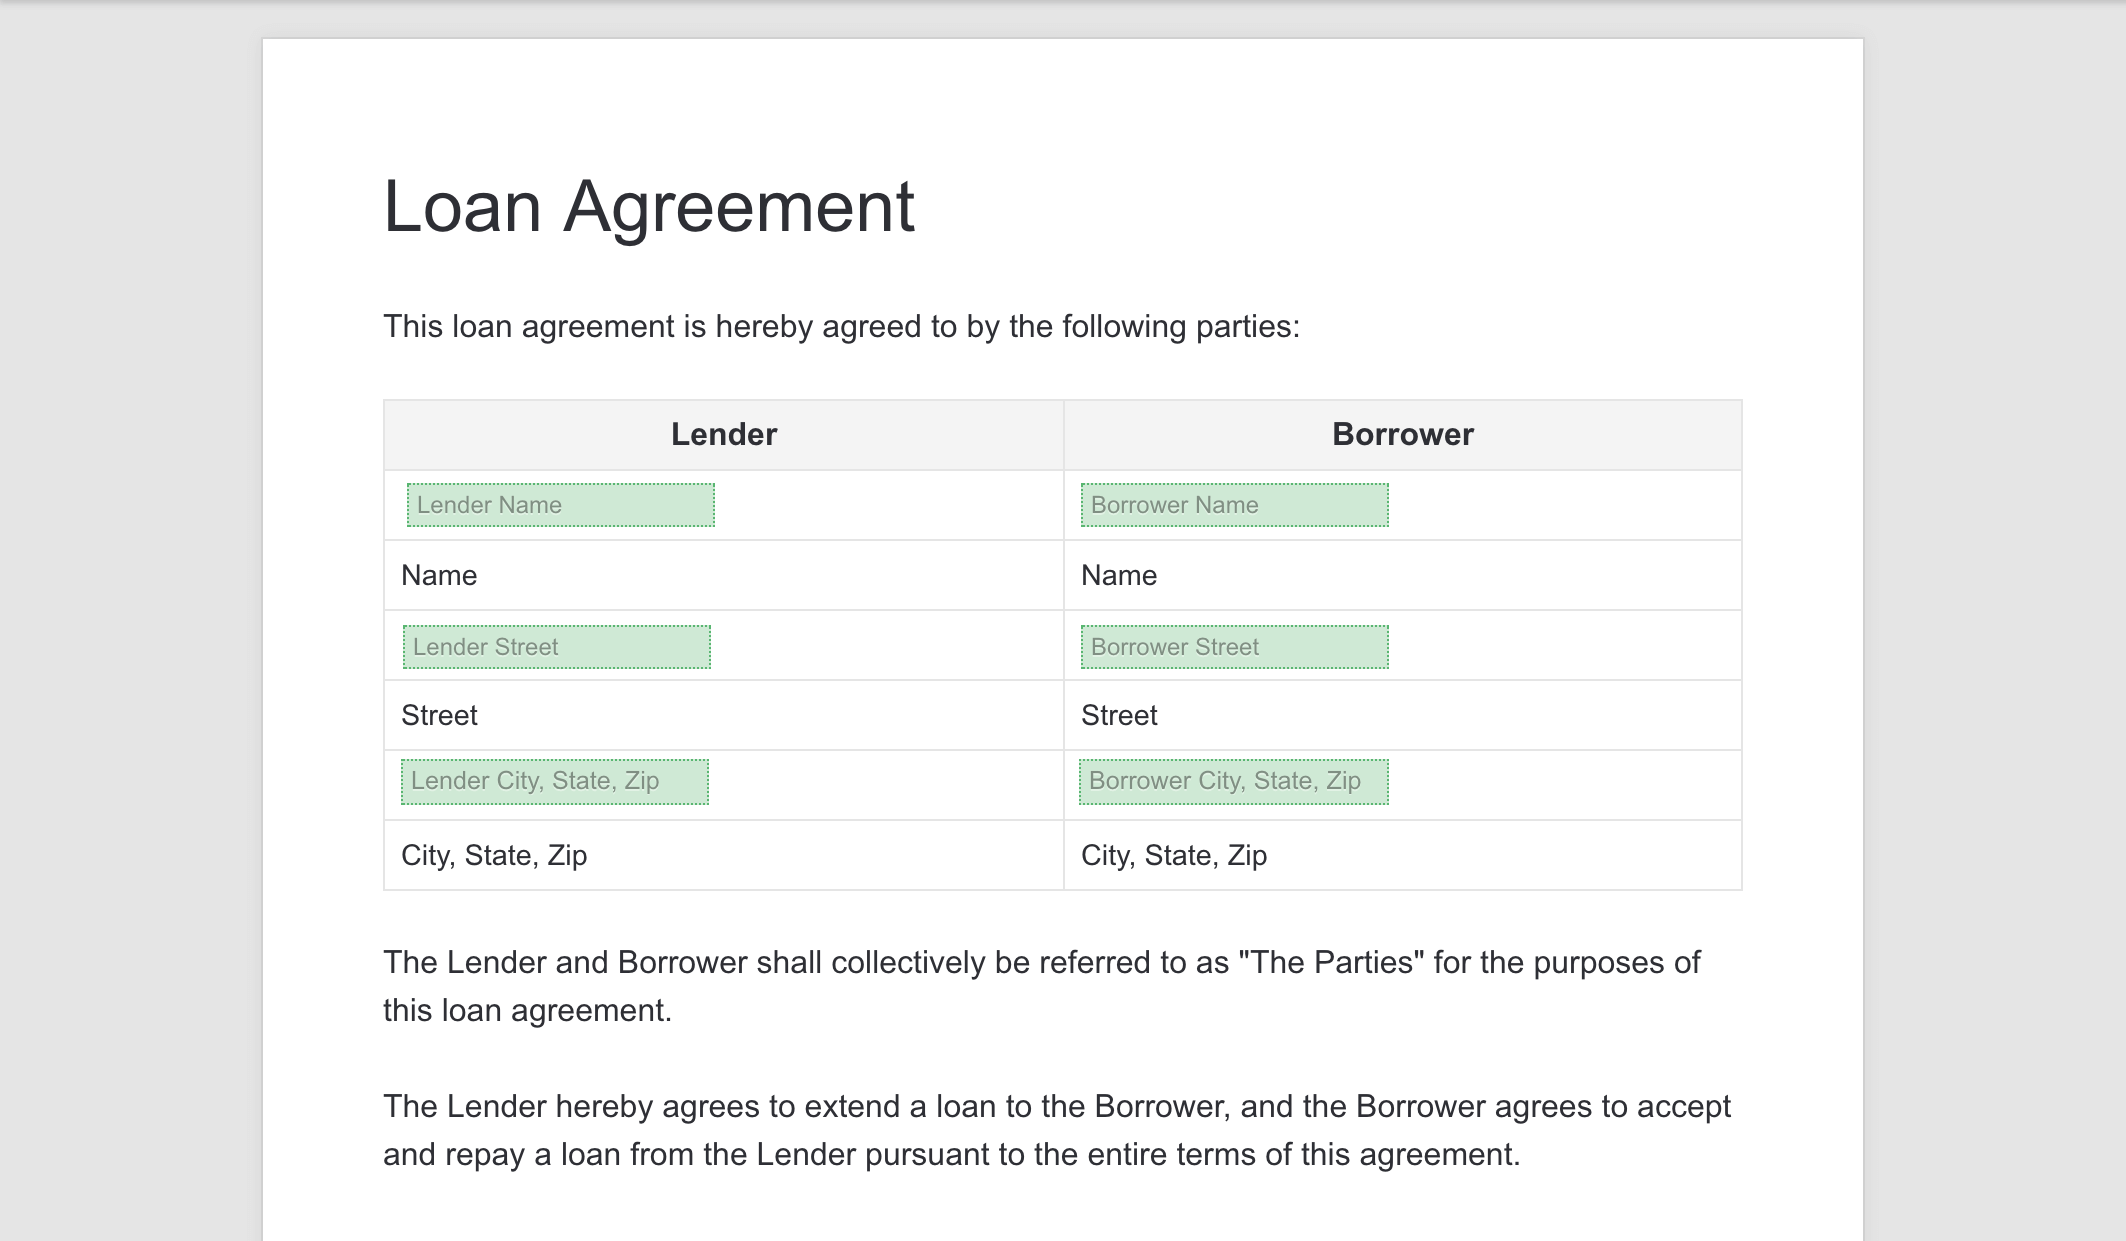 How To Fill Out And Sign A Loan Agreement Online Via Pandadoc